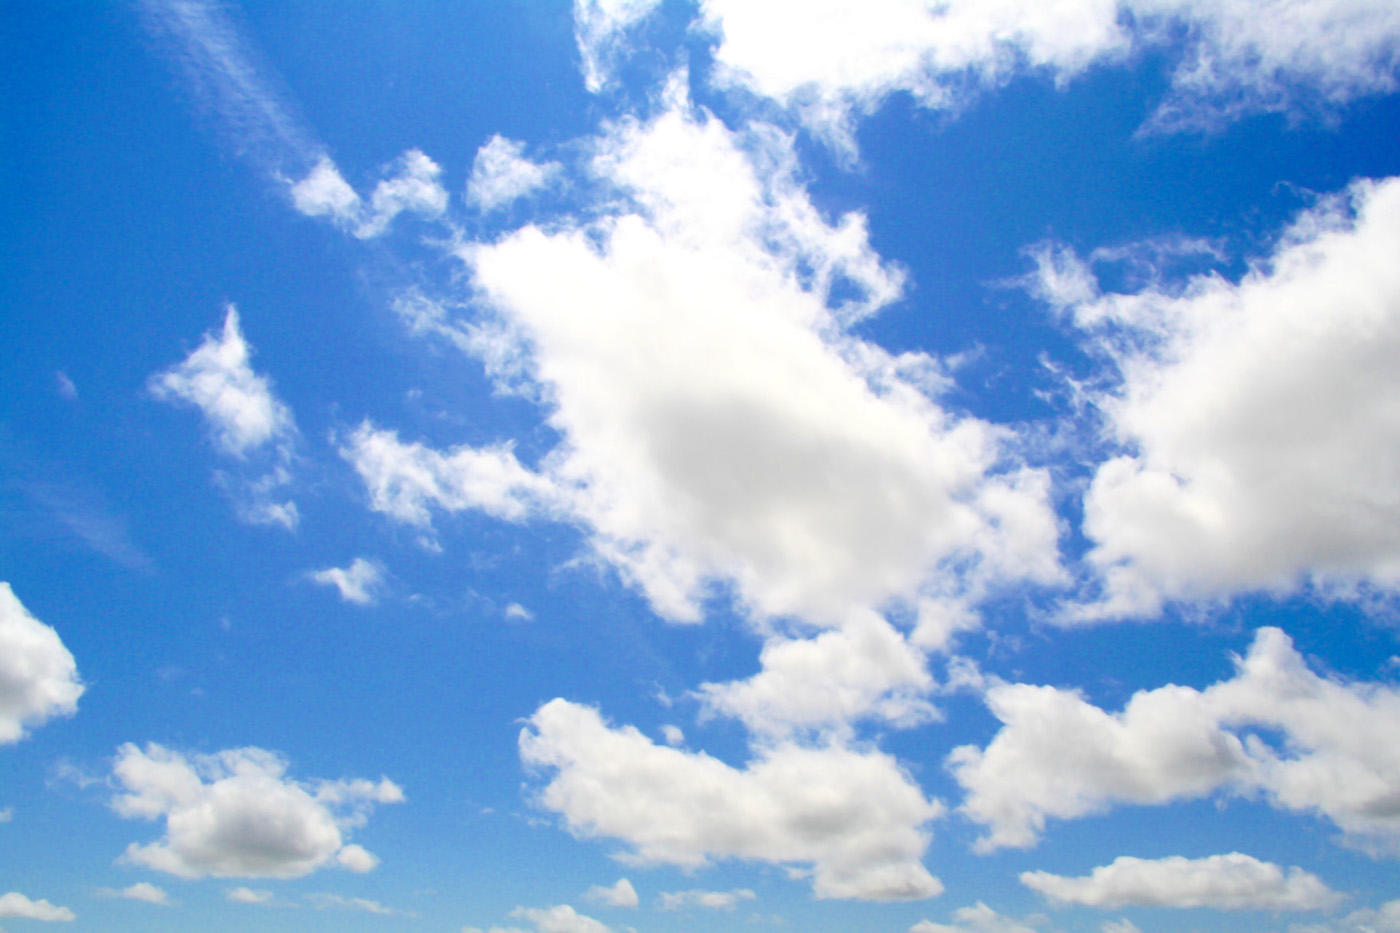 http://www.freegreatpicture.com/files/26/16464-blue-sky-and-white-clouds-high-definition-picture.jpg